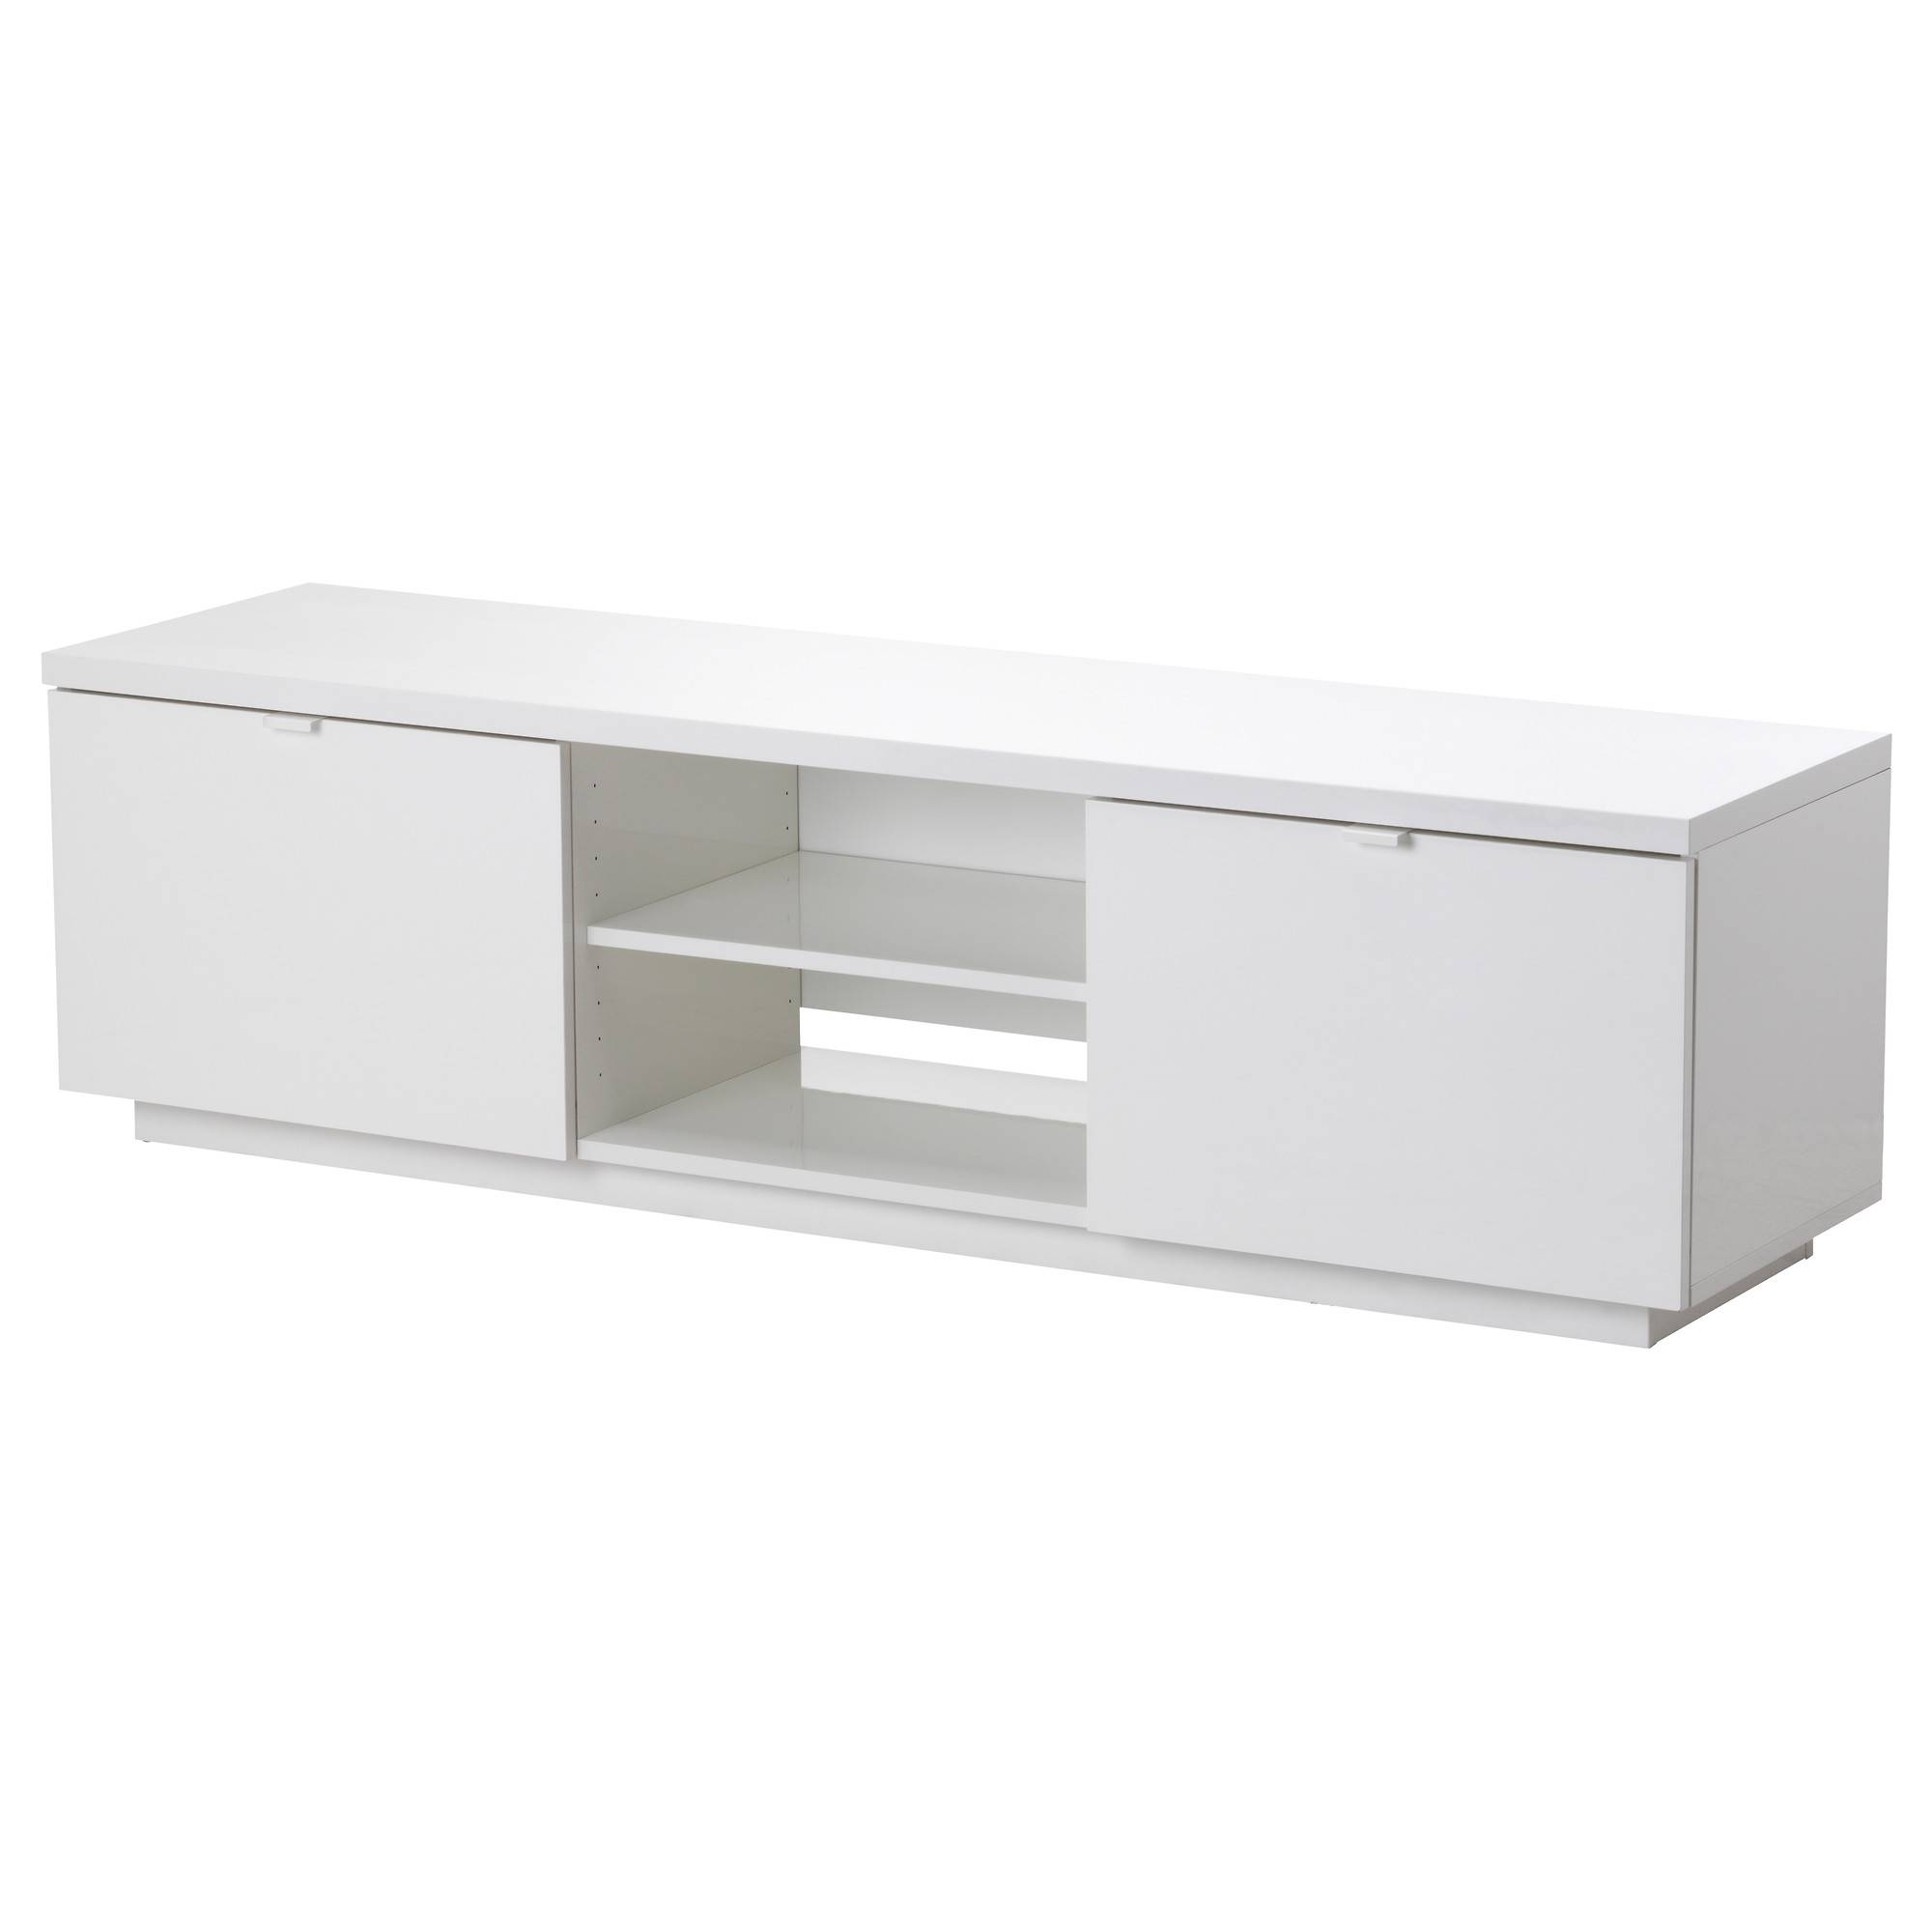 Byås Tv Unit - Ikea with regard to White Gloss Tv Cabinets (Image 2 of 15)